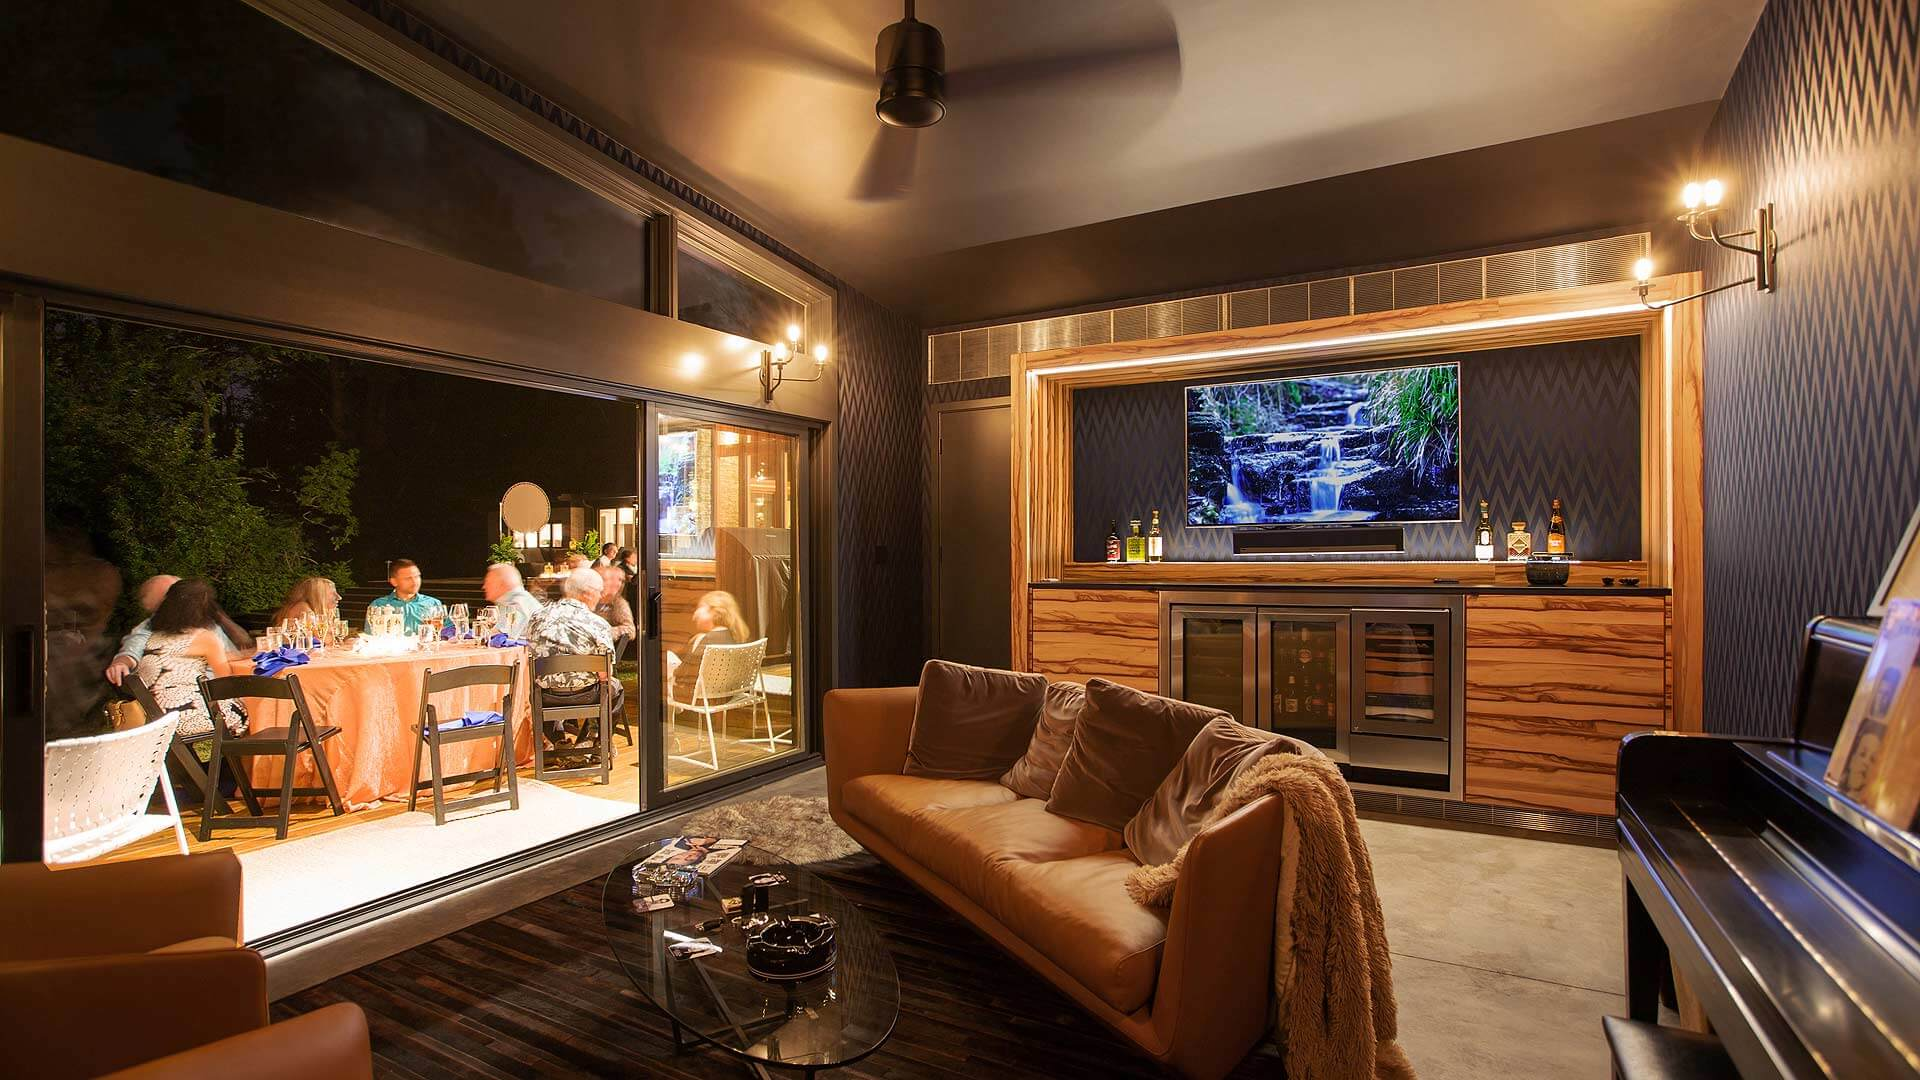 Summer Party Nightfall Interior - Cigar Room - Midcentury Modern Addition - Brendonwood, Indianapolis - Christopher Short, Paul Reynolds, Architects, HAUS | Architecture For Modern Lifestyles - WERK | Building Modern - Paul Reynolds, Project Manager